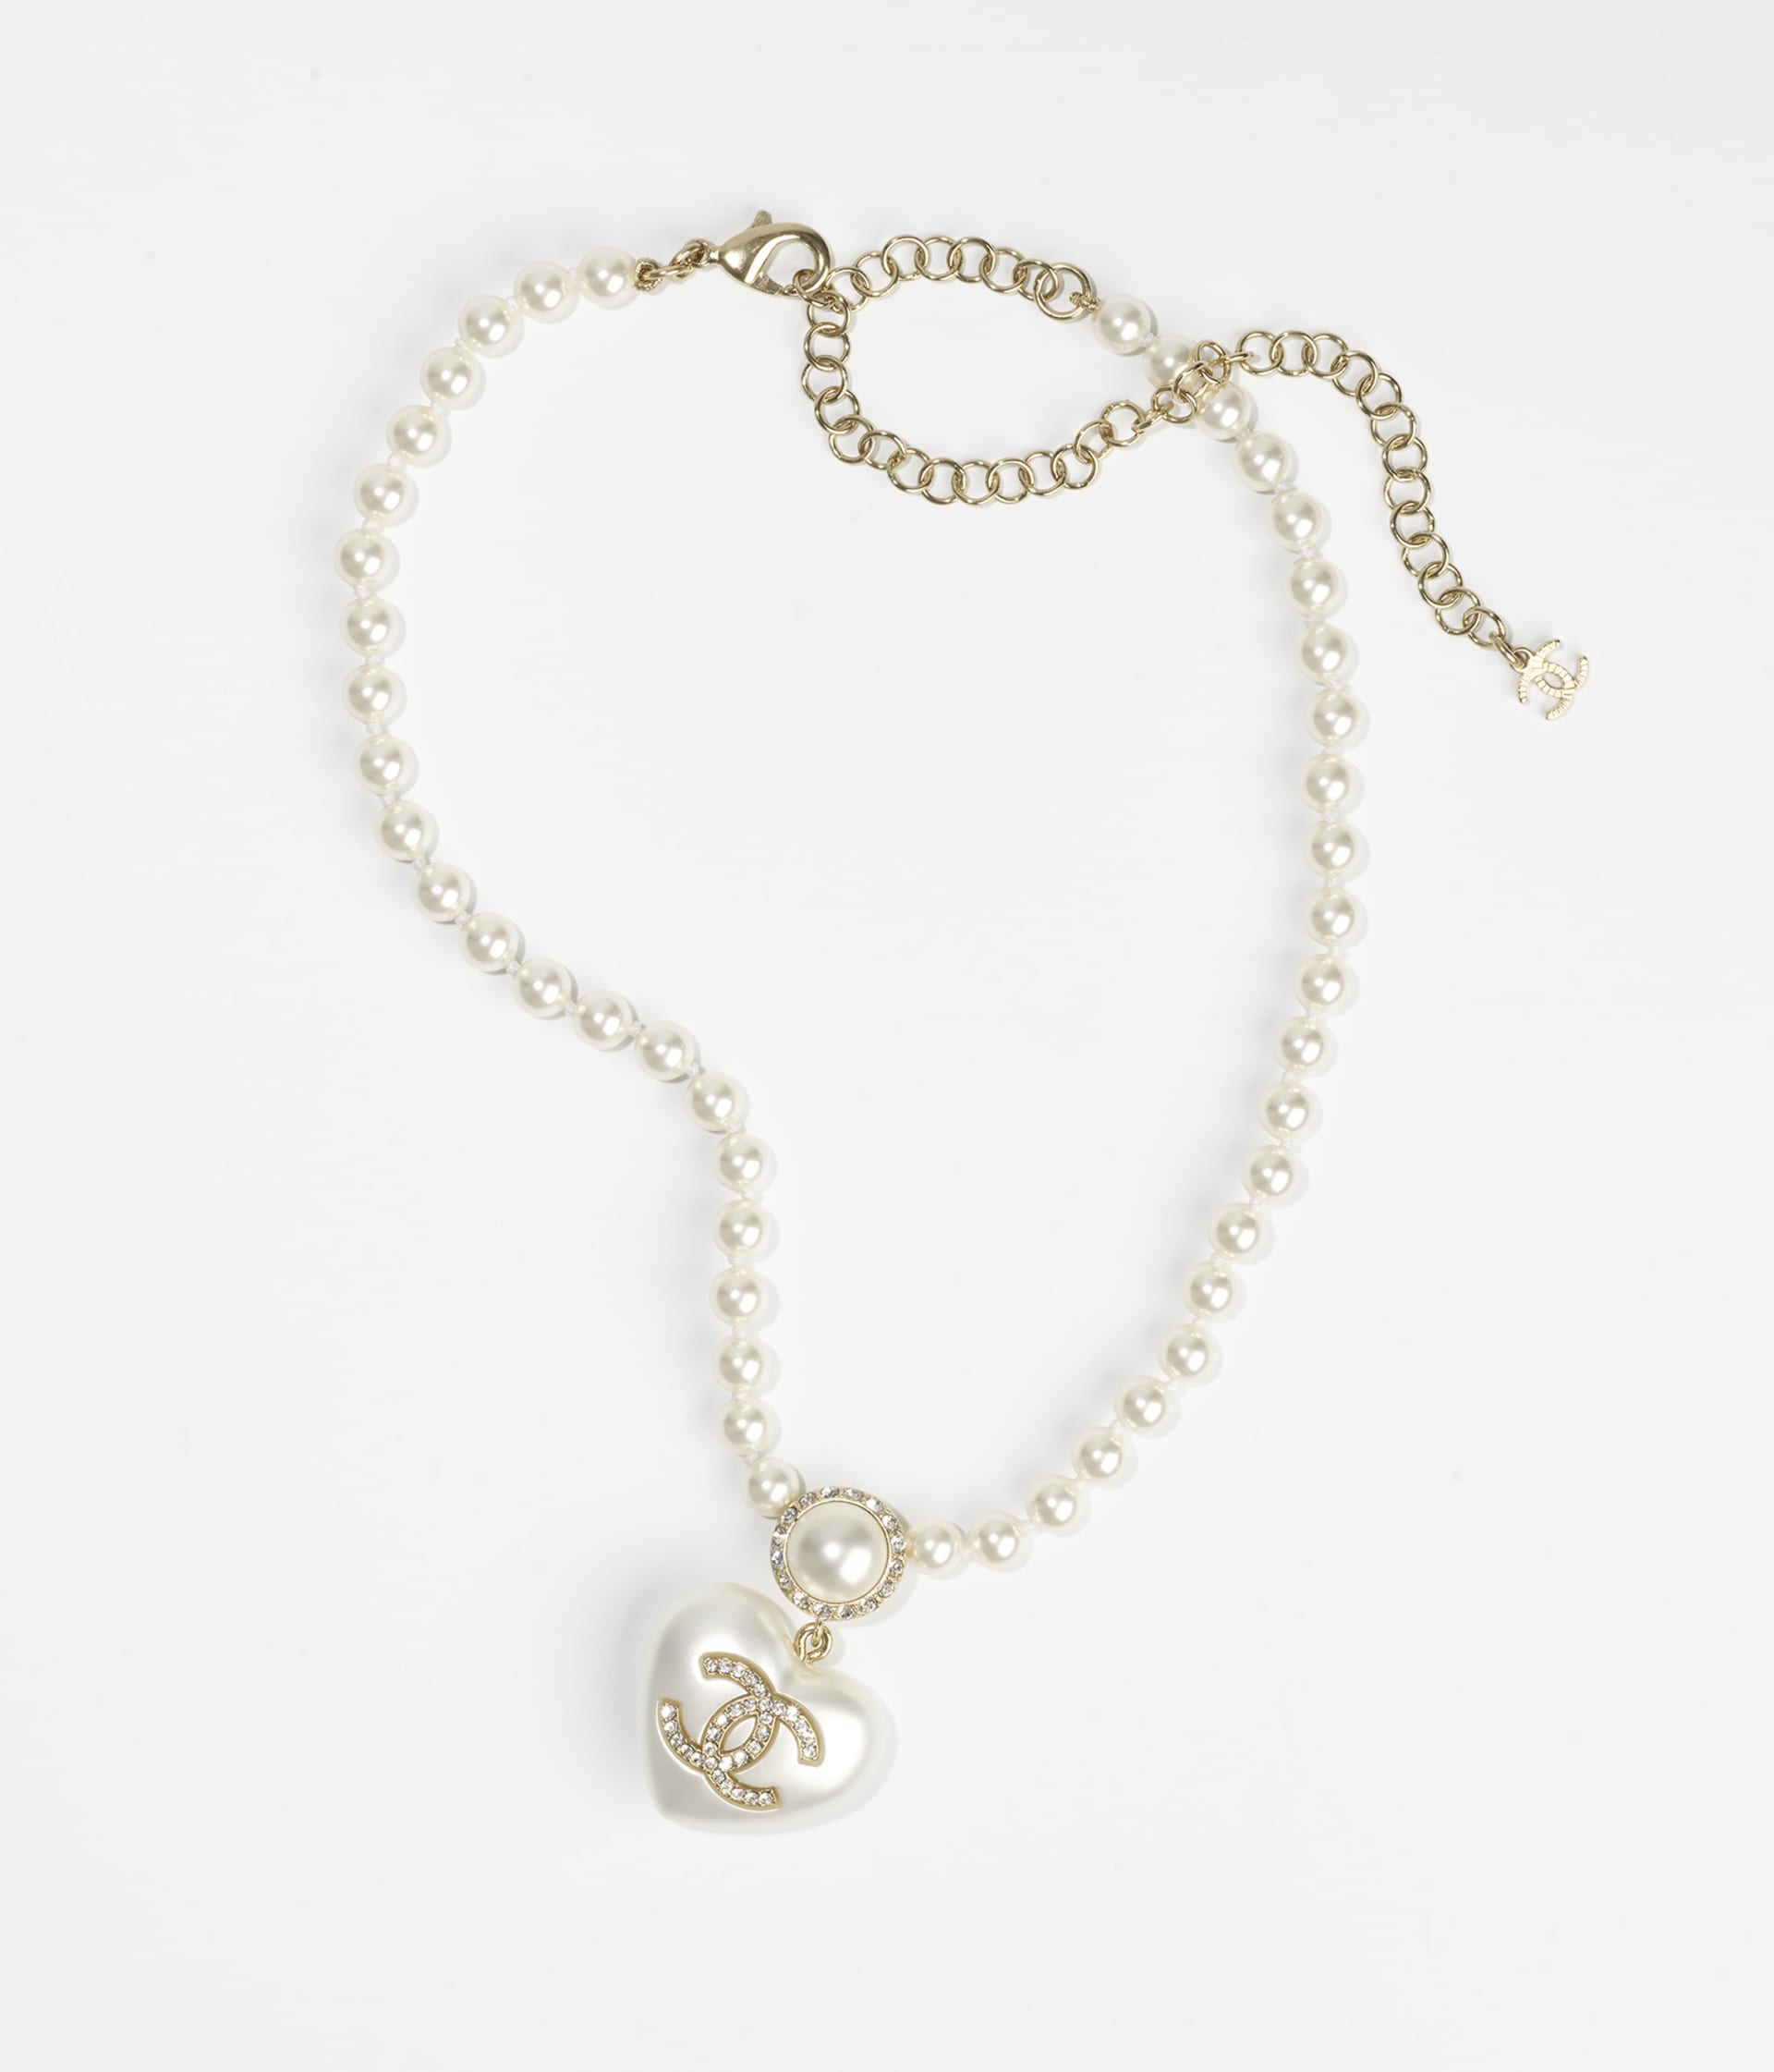 image 1 - Necklace - Metal, Resin, Imitation Pearls, Glass Pearls & Strass - Gold, Pearly White & Crystal